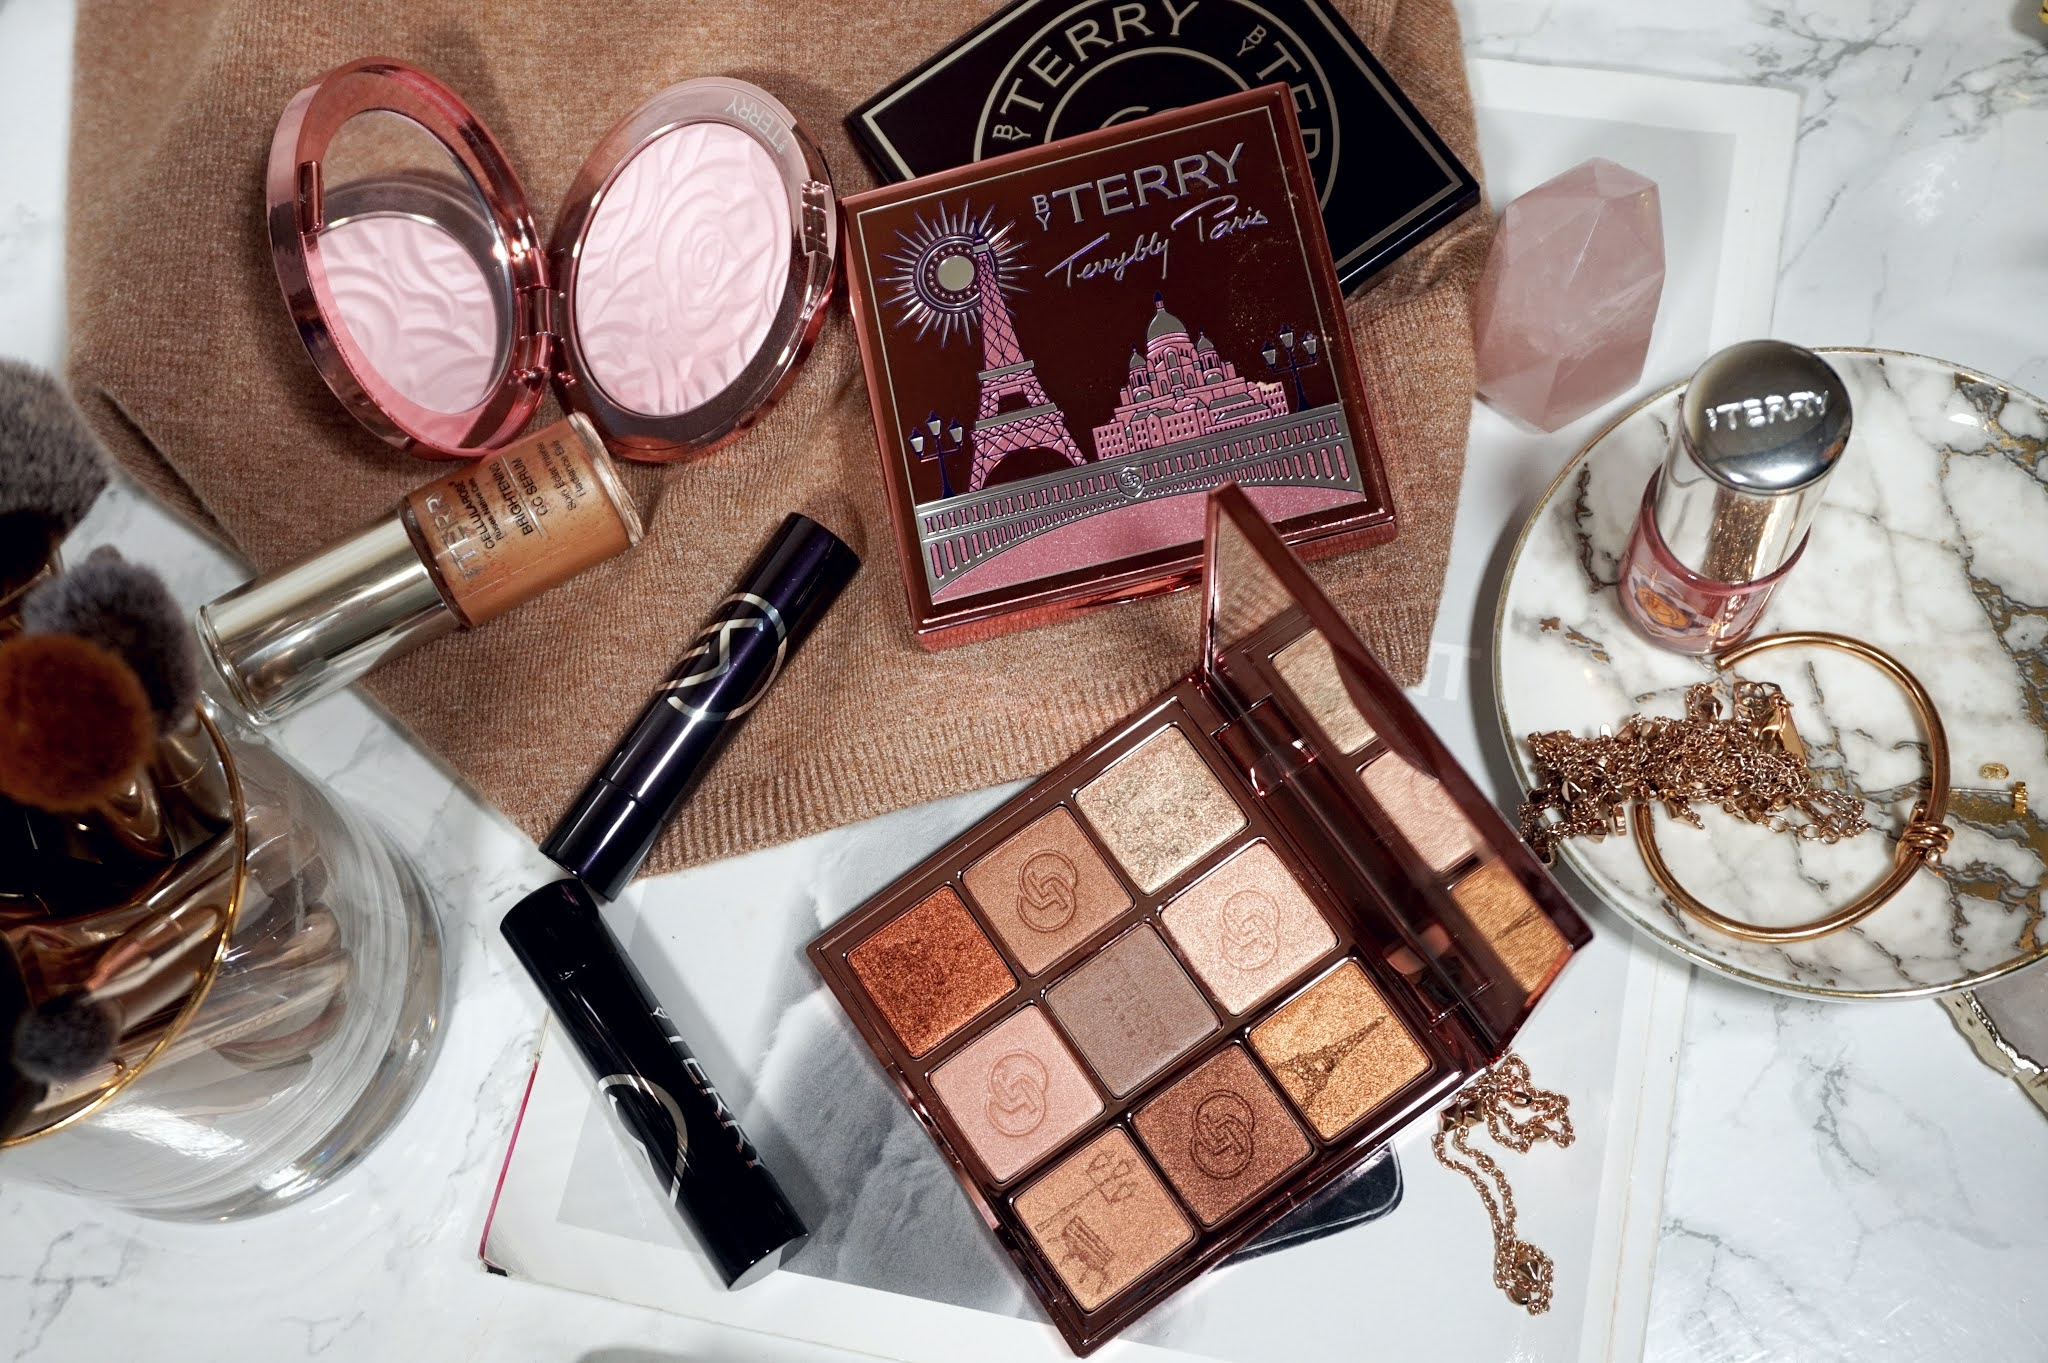 By Terry V.I.P. Expert Bonjour Paris Palette Review and Swatches